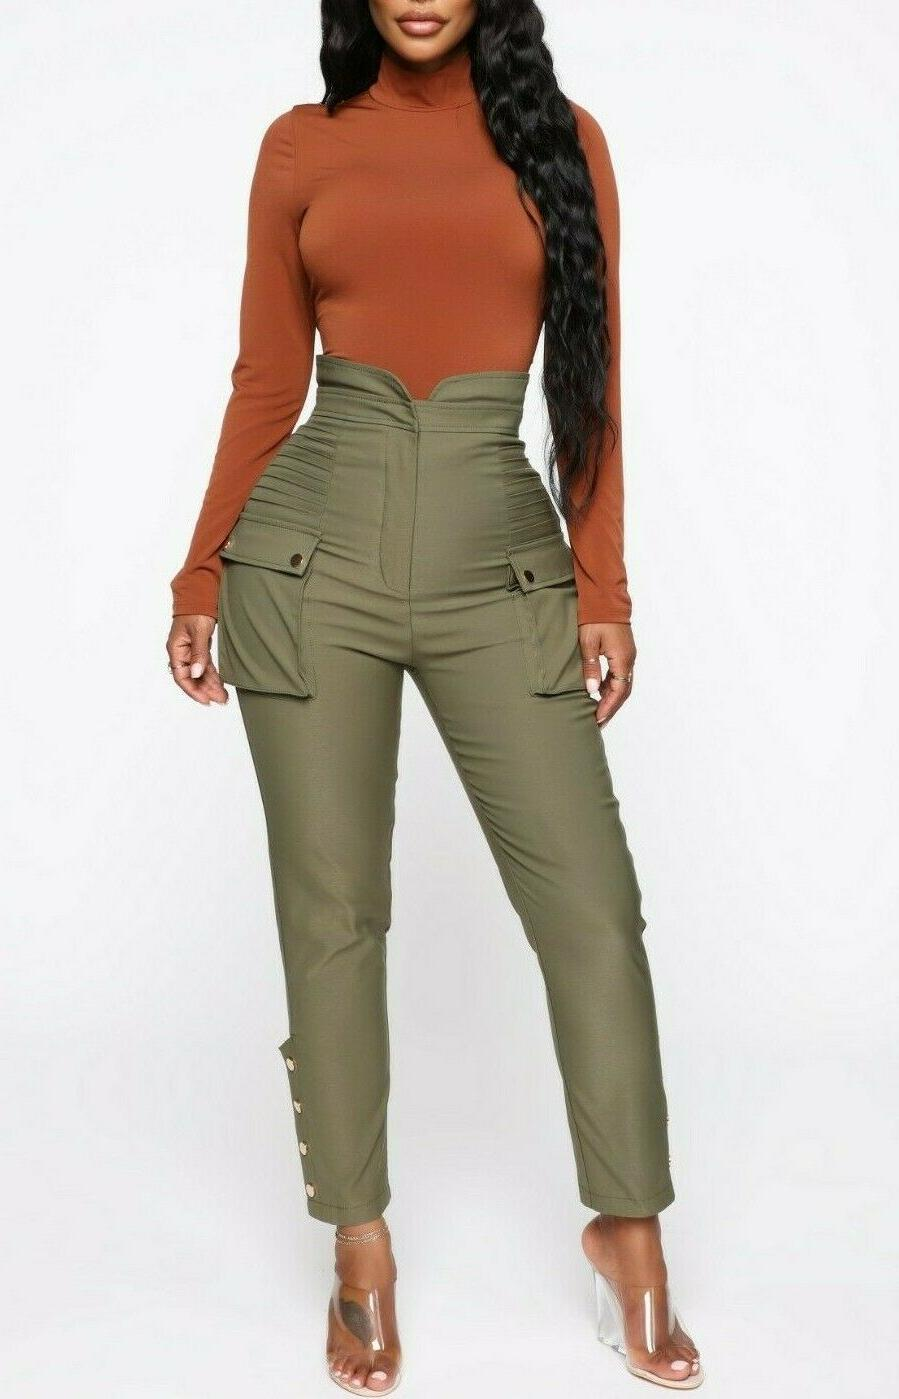 High Waisted Casual Twill Cargo Pants Olive S